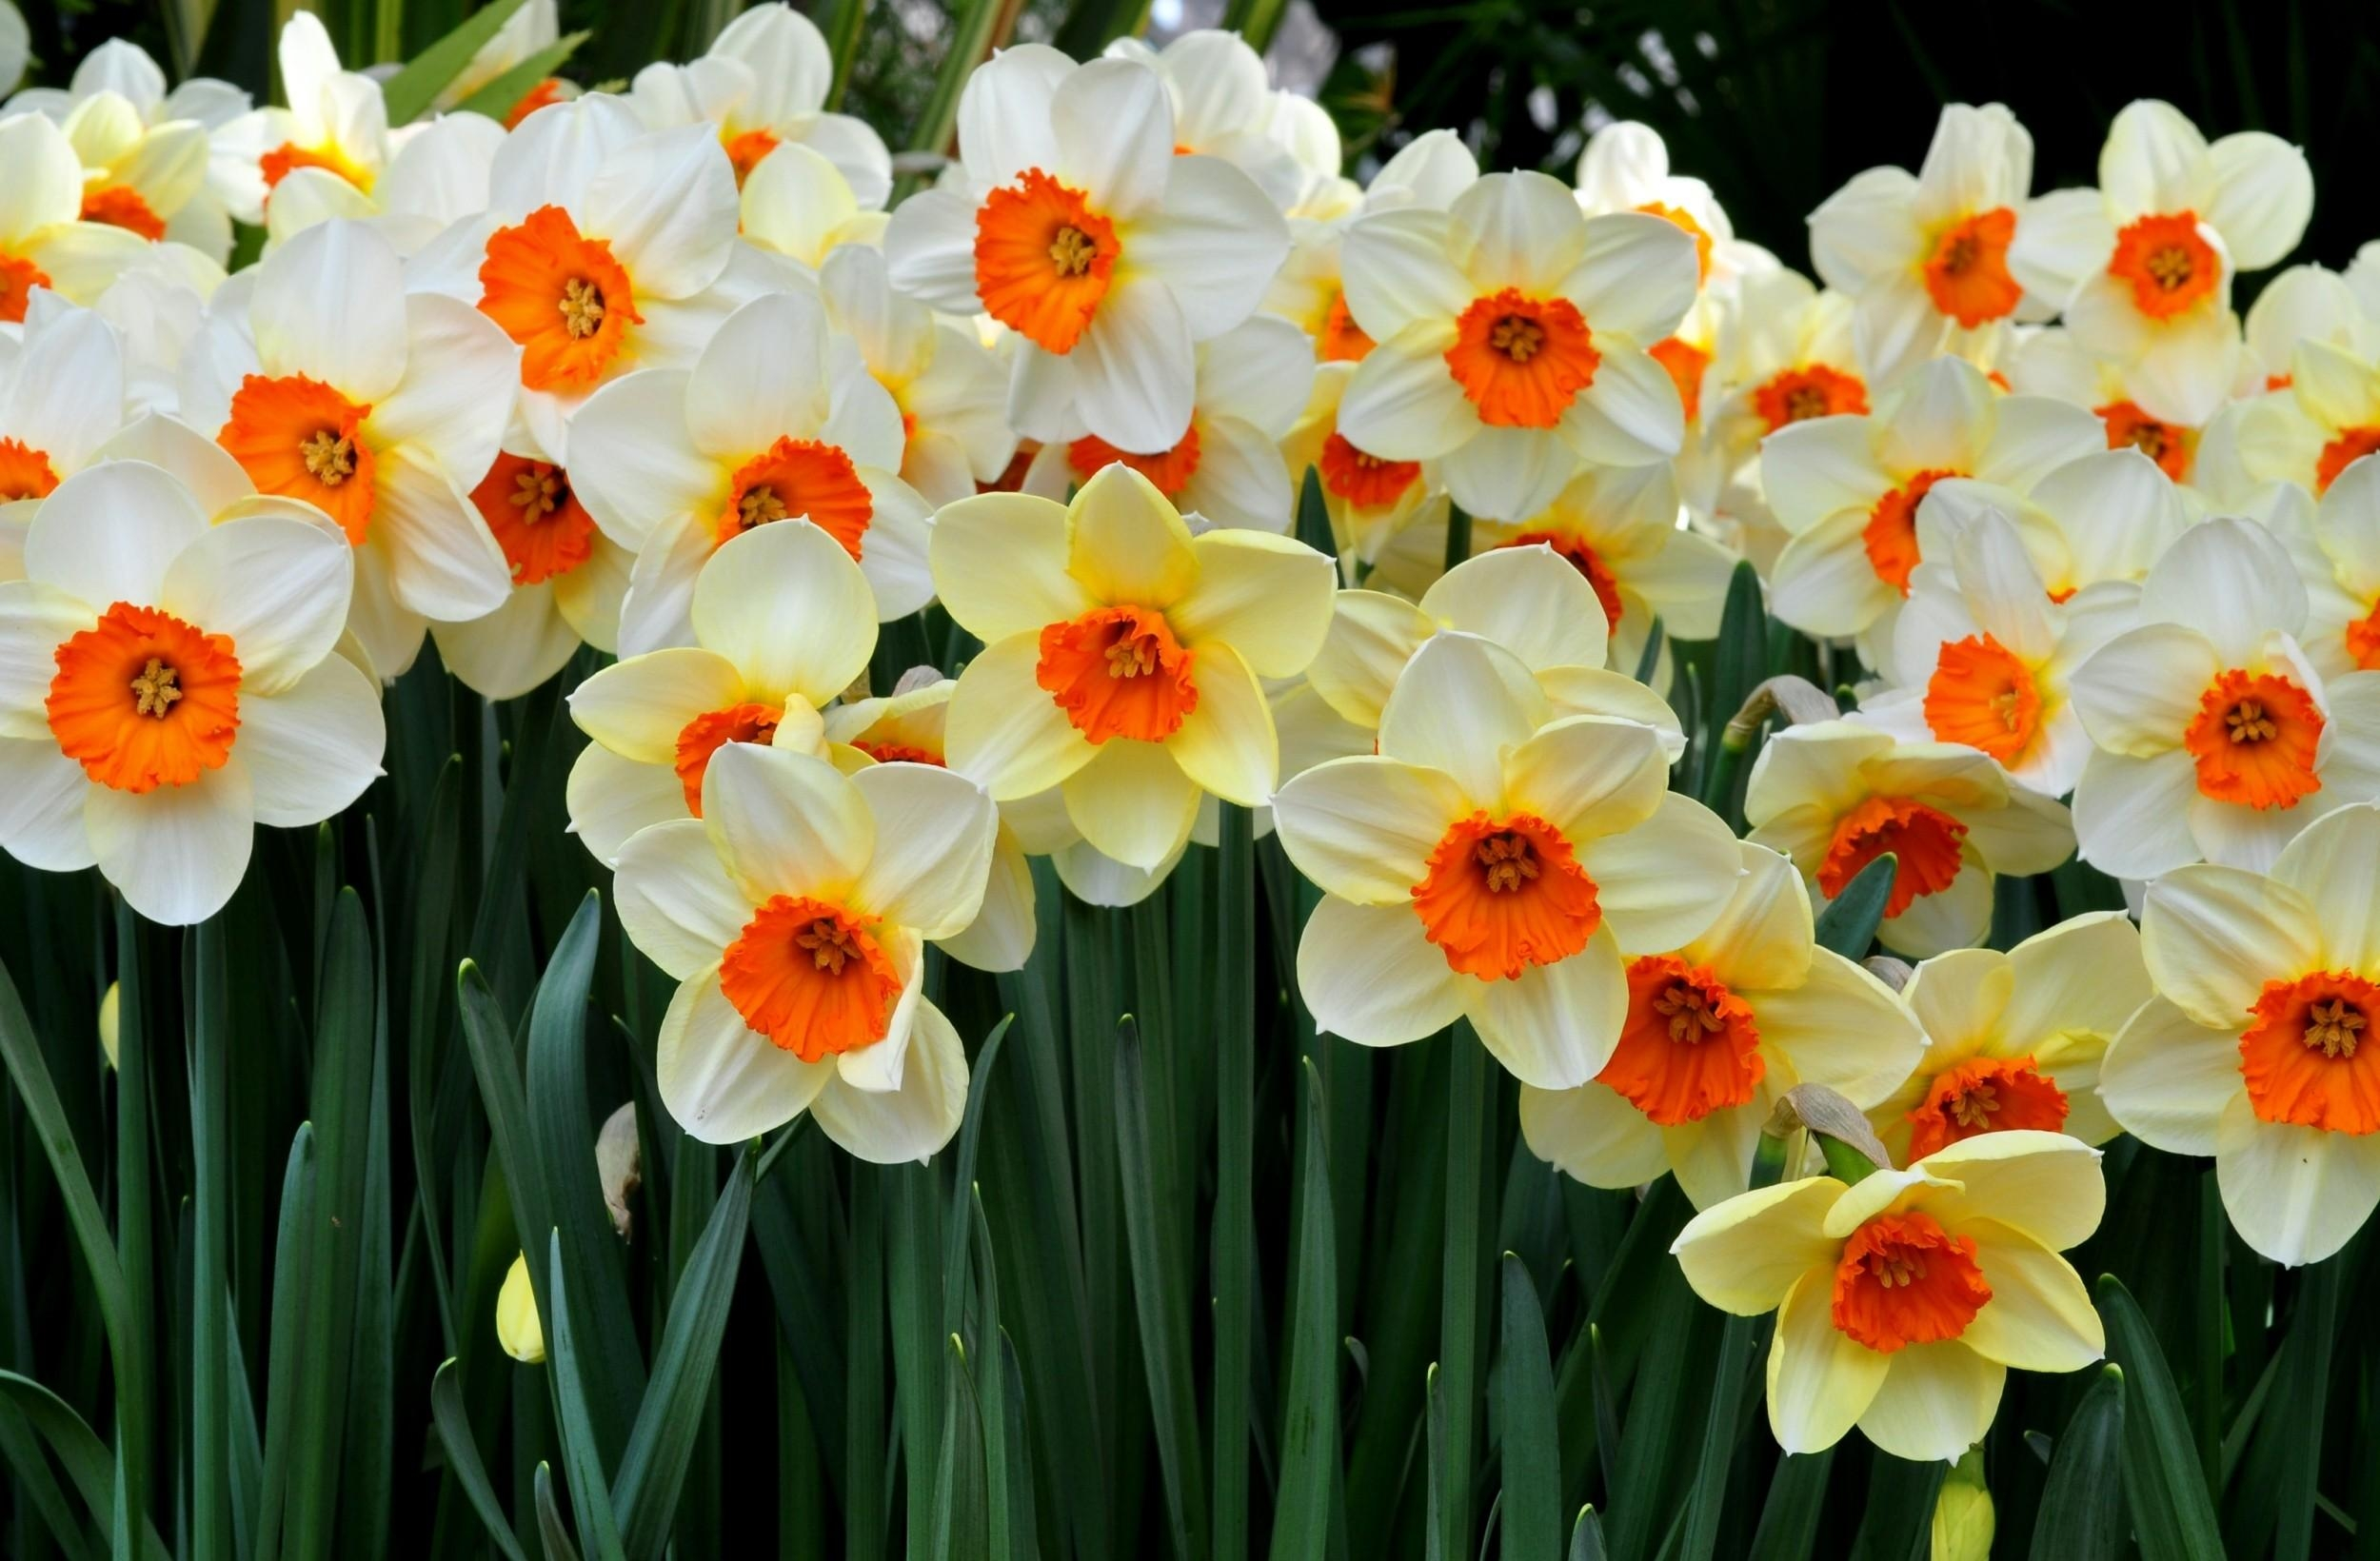 Wallpaper   daffodils  flowers  flowerbed  spring mood 2500x1640     daffodils flowers flowerbed spring mood